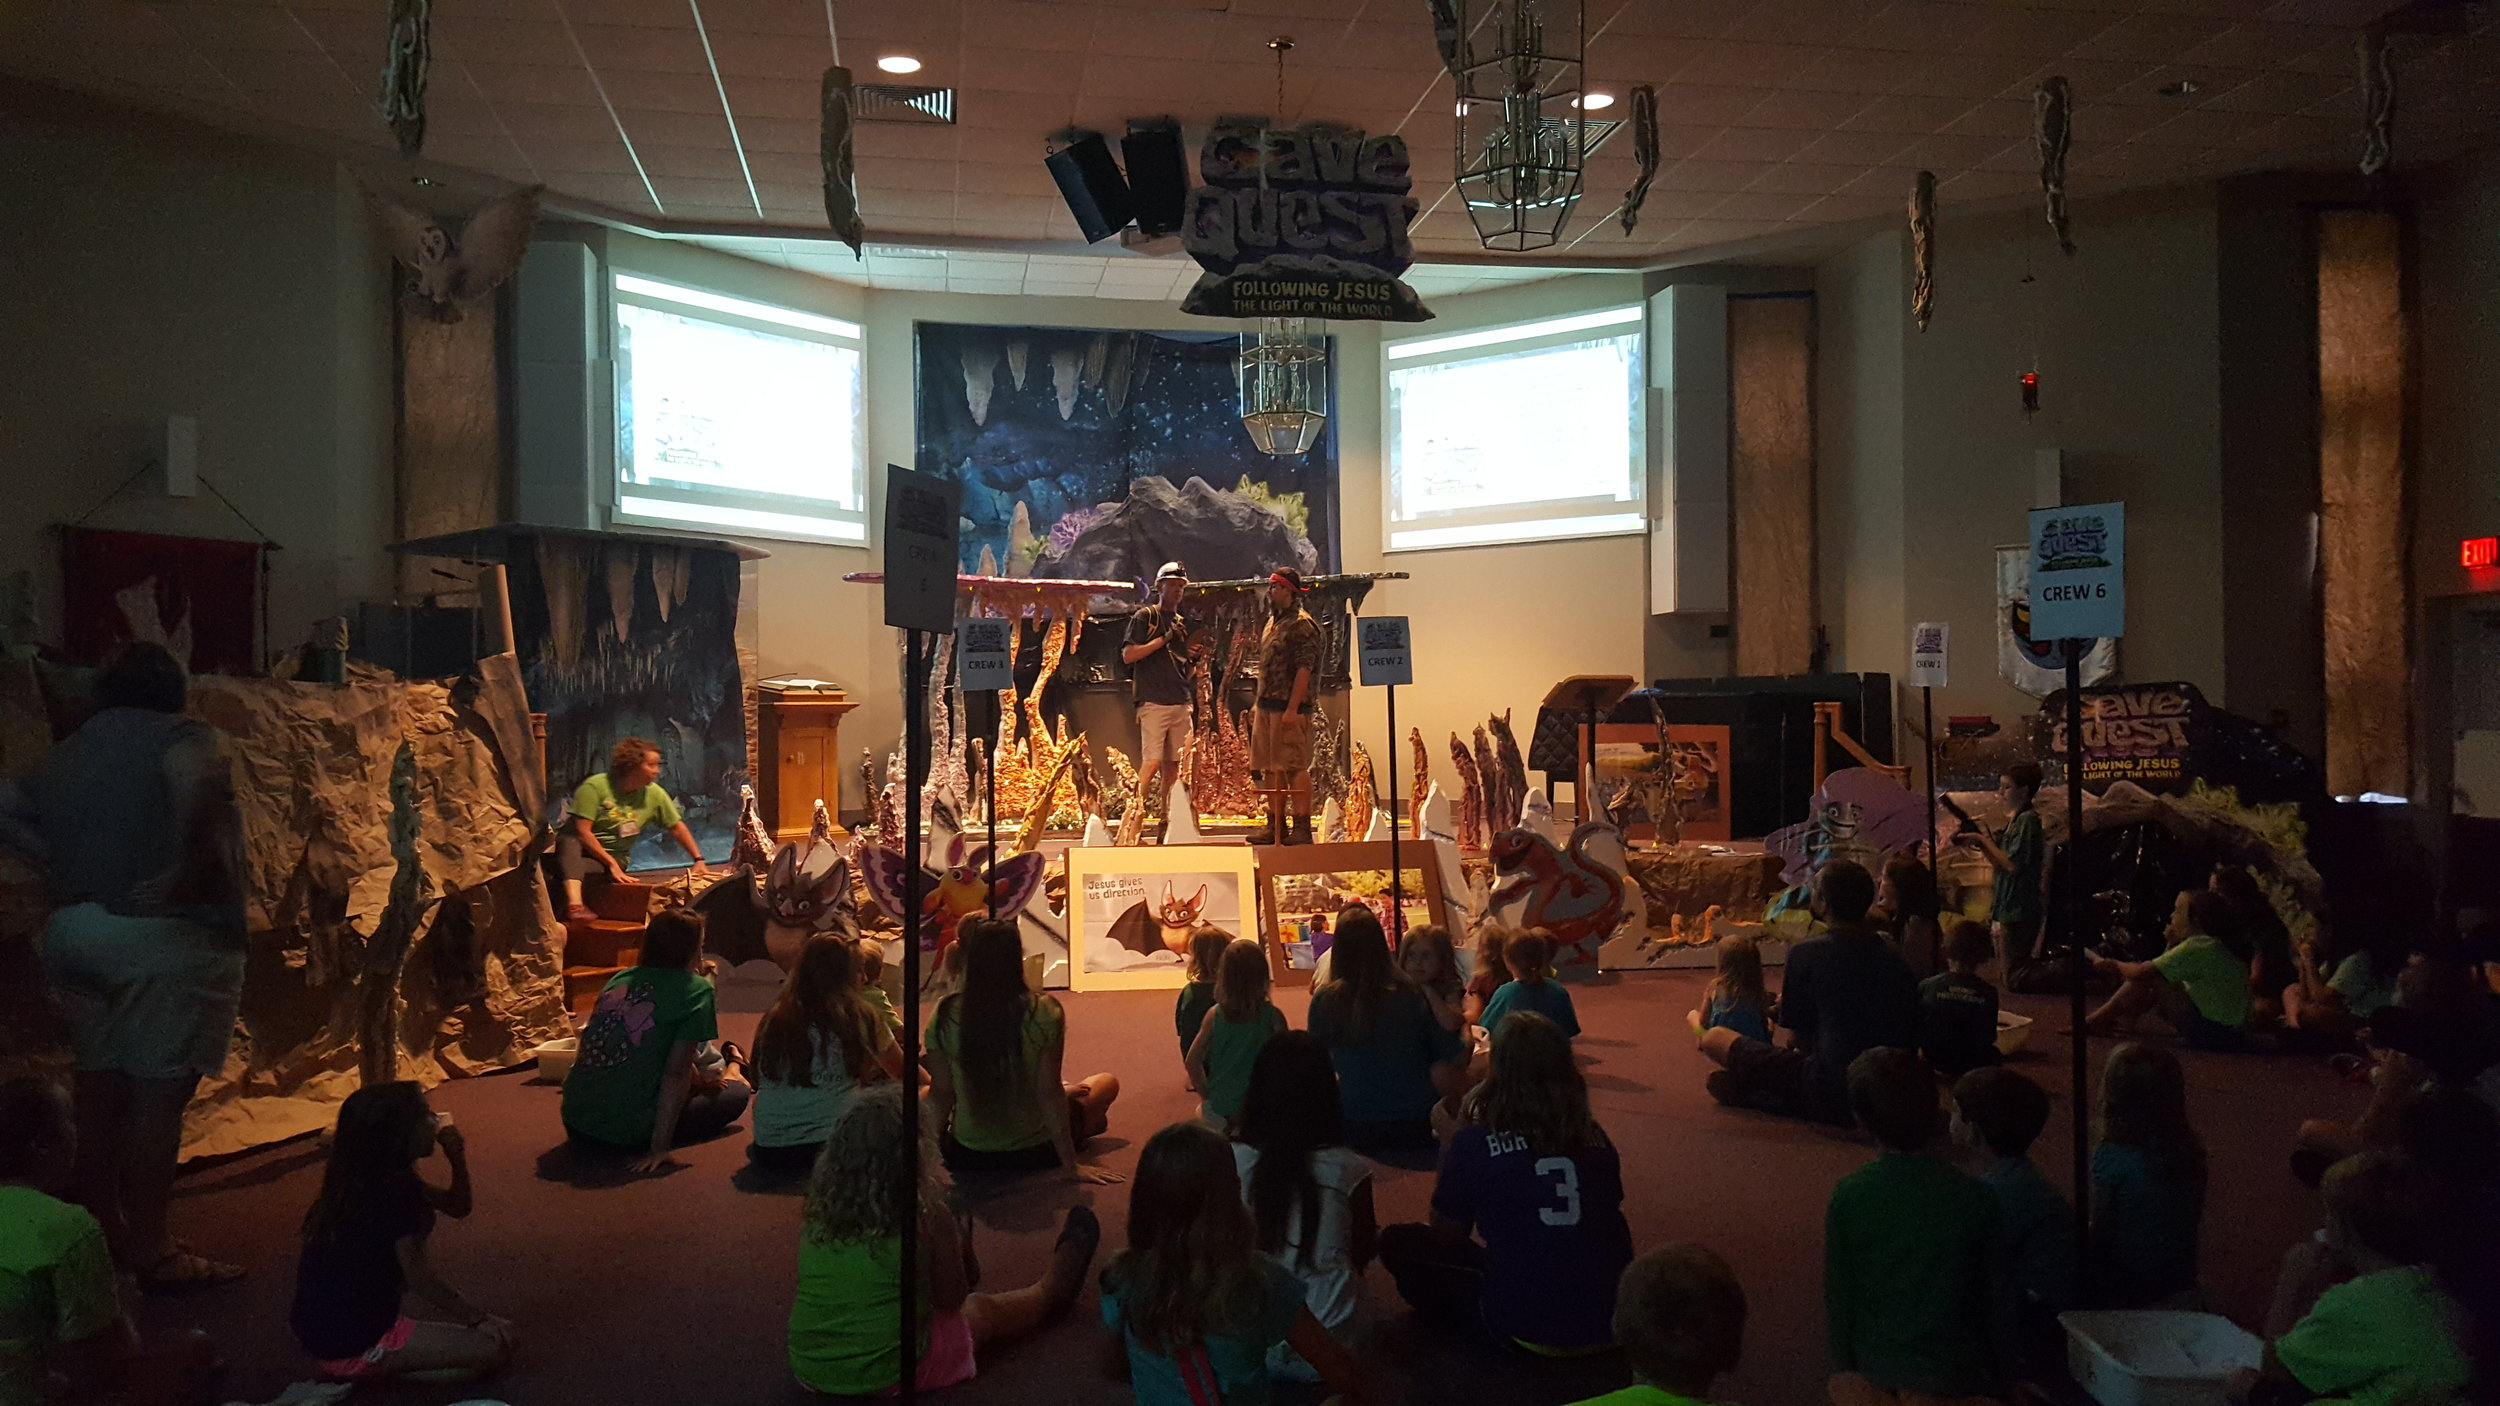 St. Andrews Parish UMC VBS | West Ashley